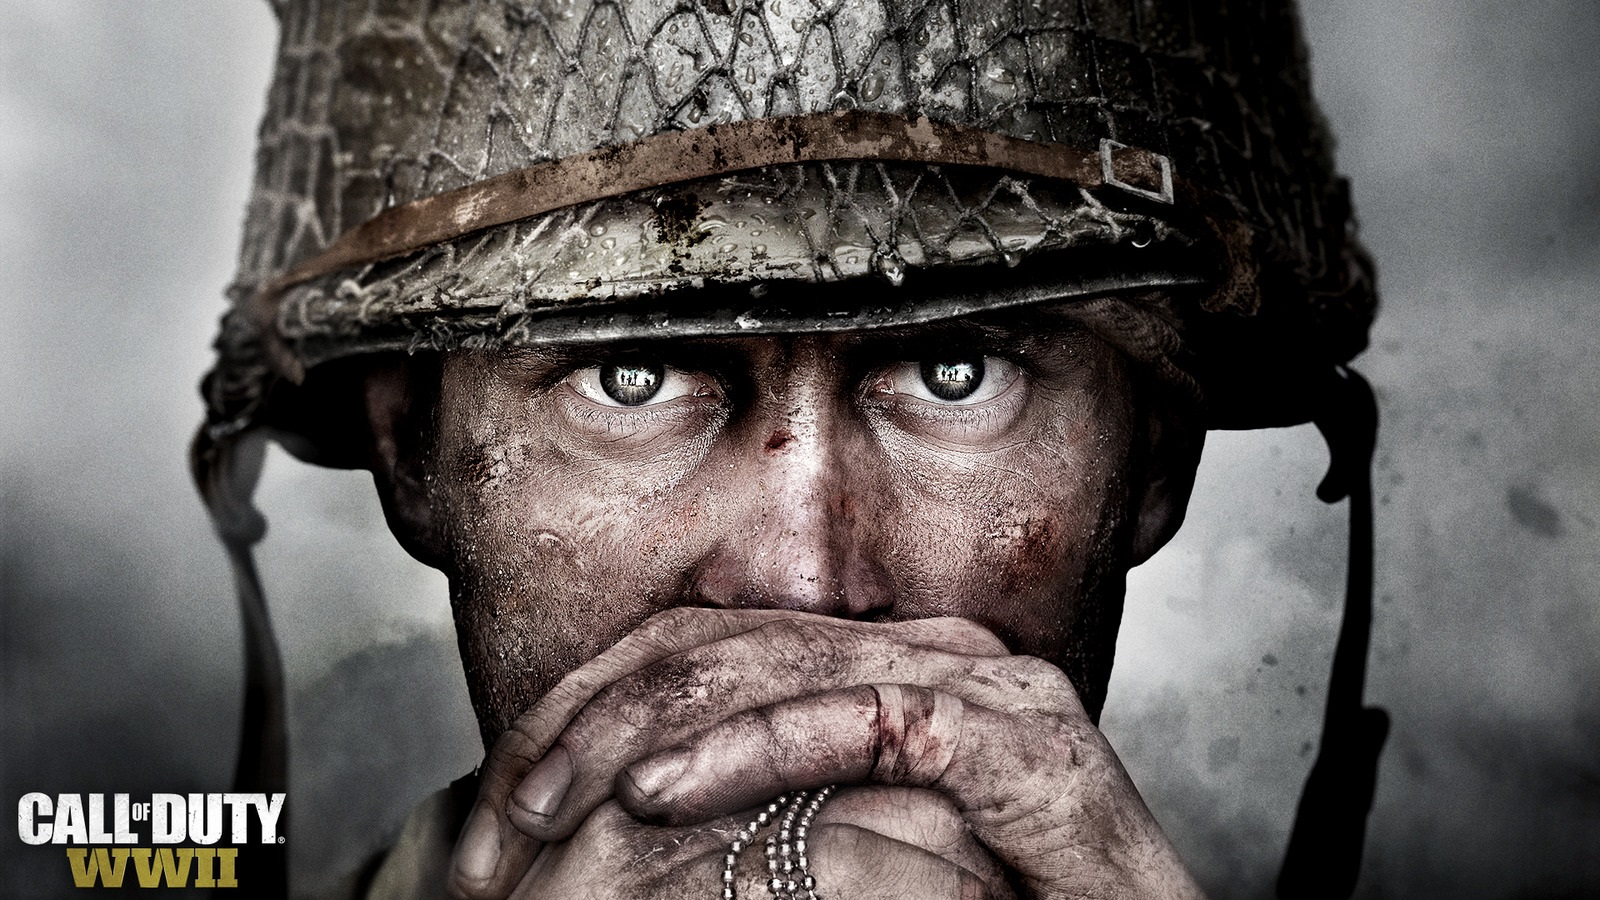 Call of Duty: WWII is much harder than previous games, by design